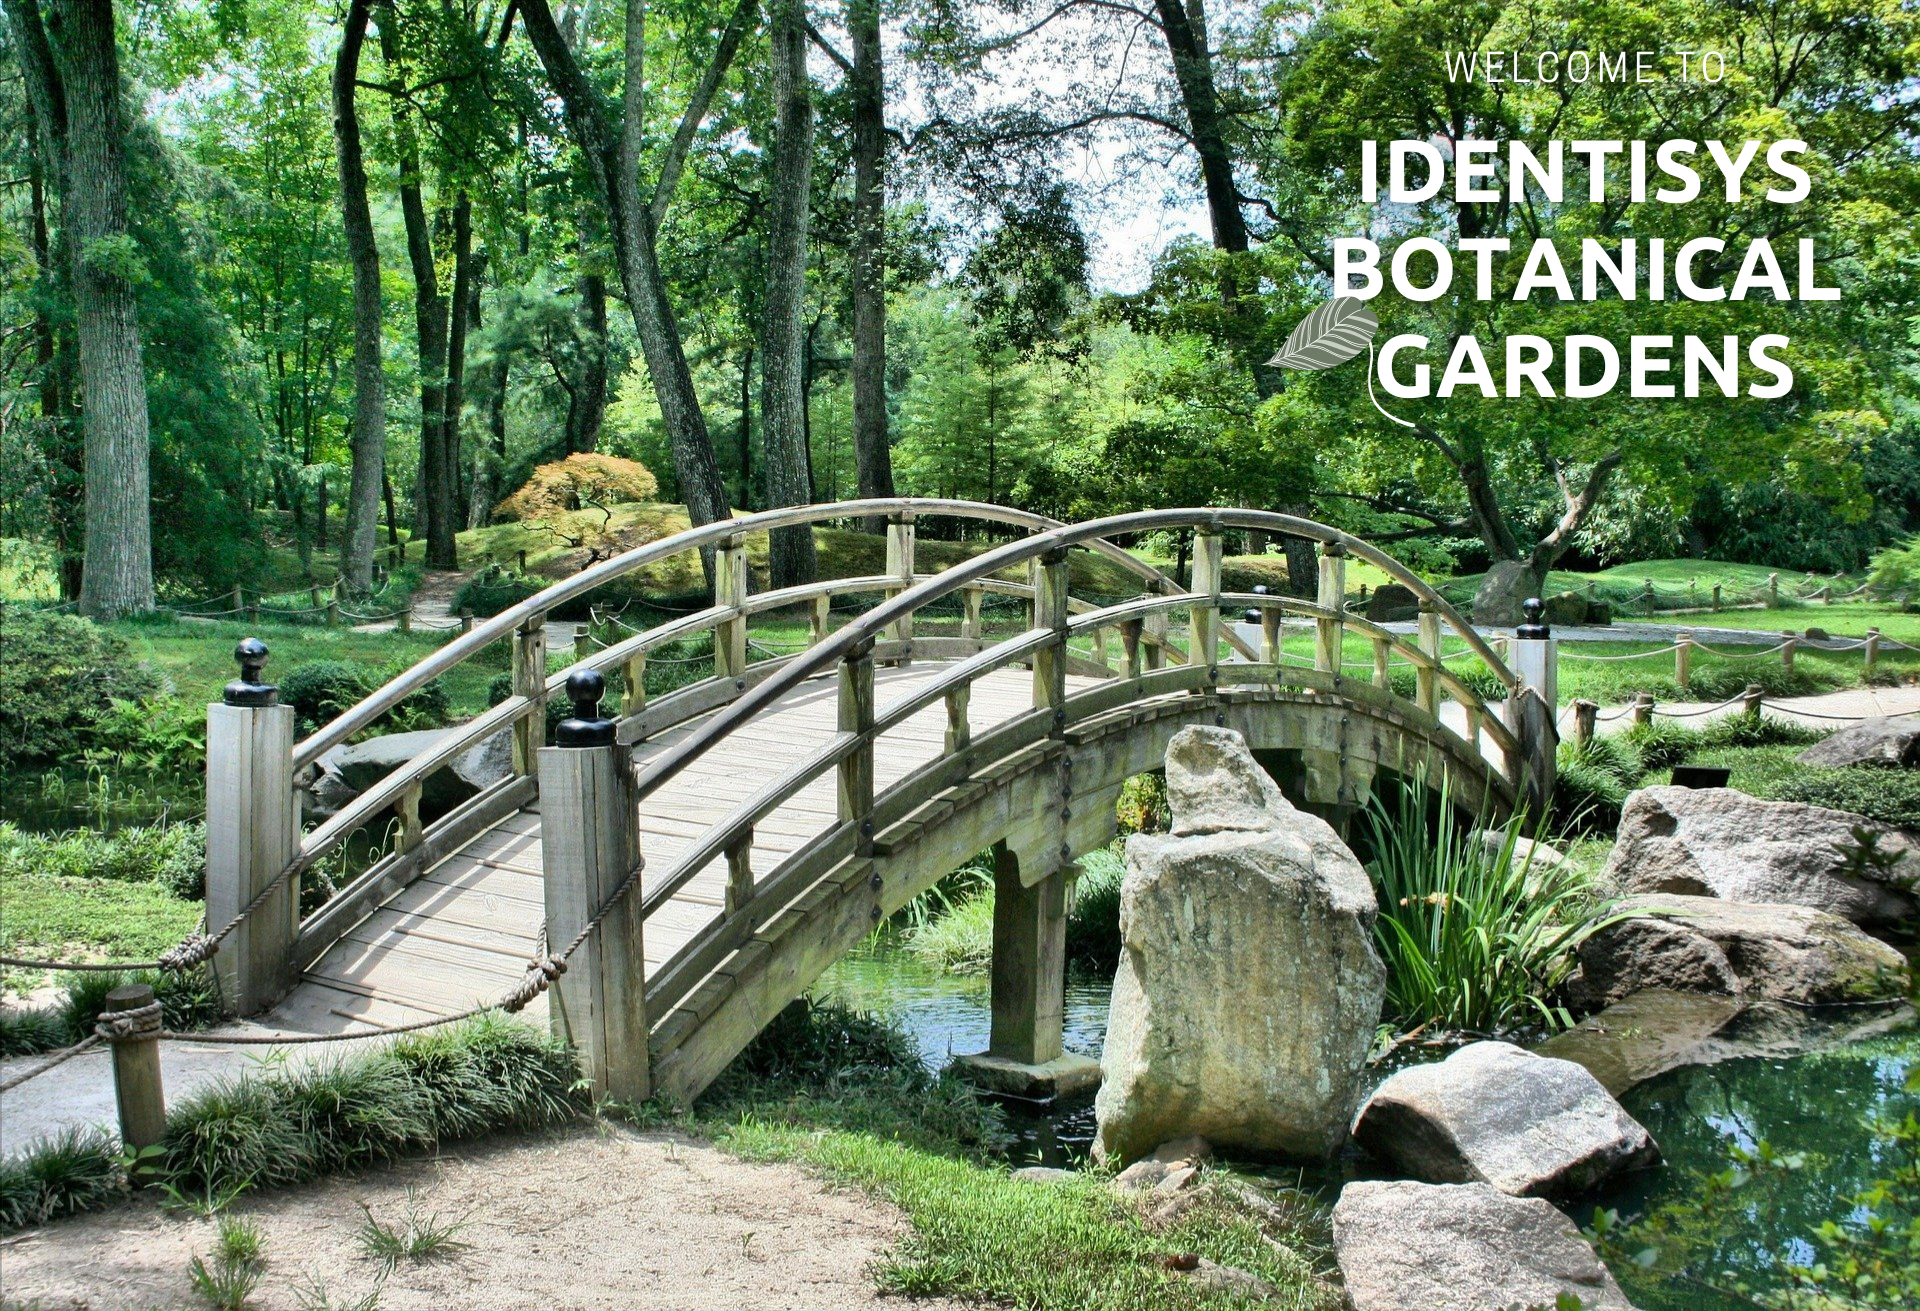 Welcome to Identisys Botanical Gardens